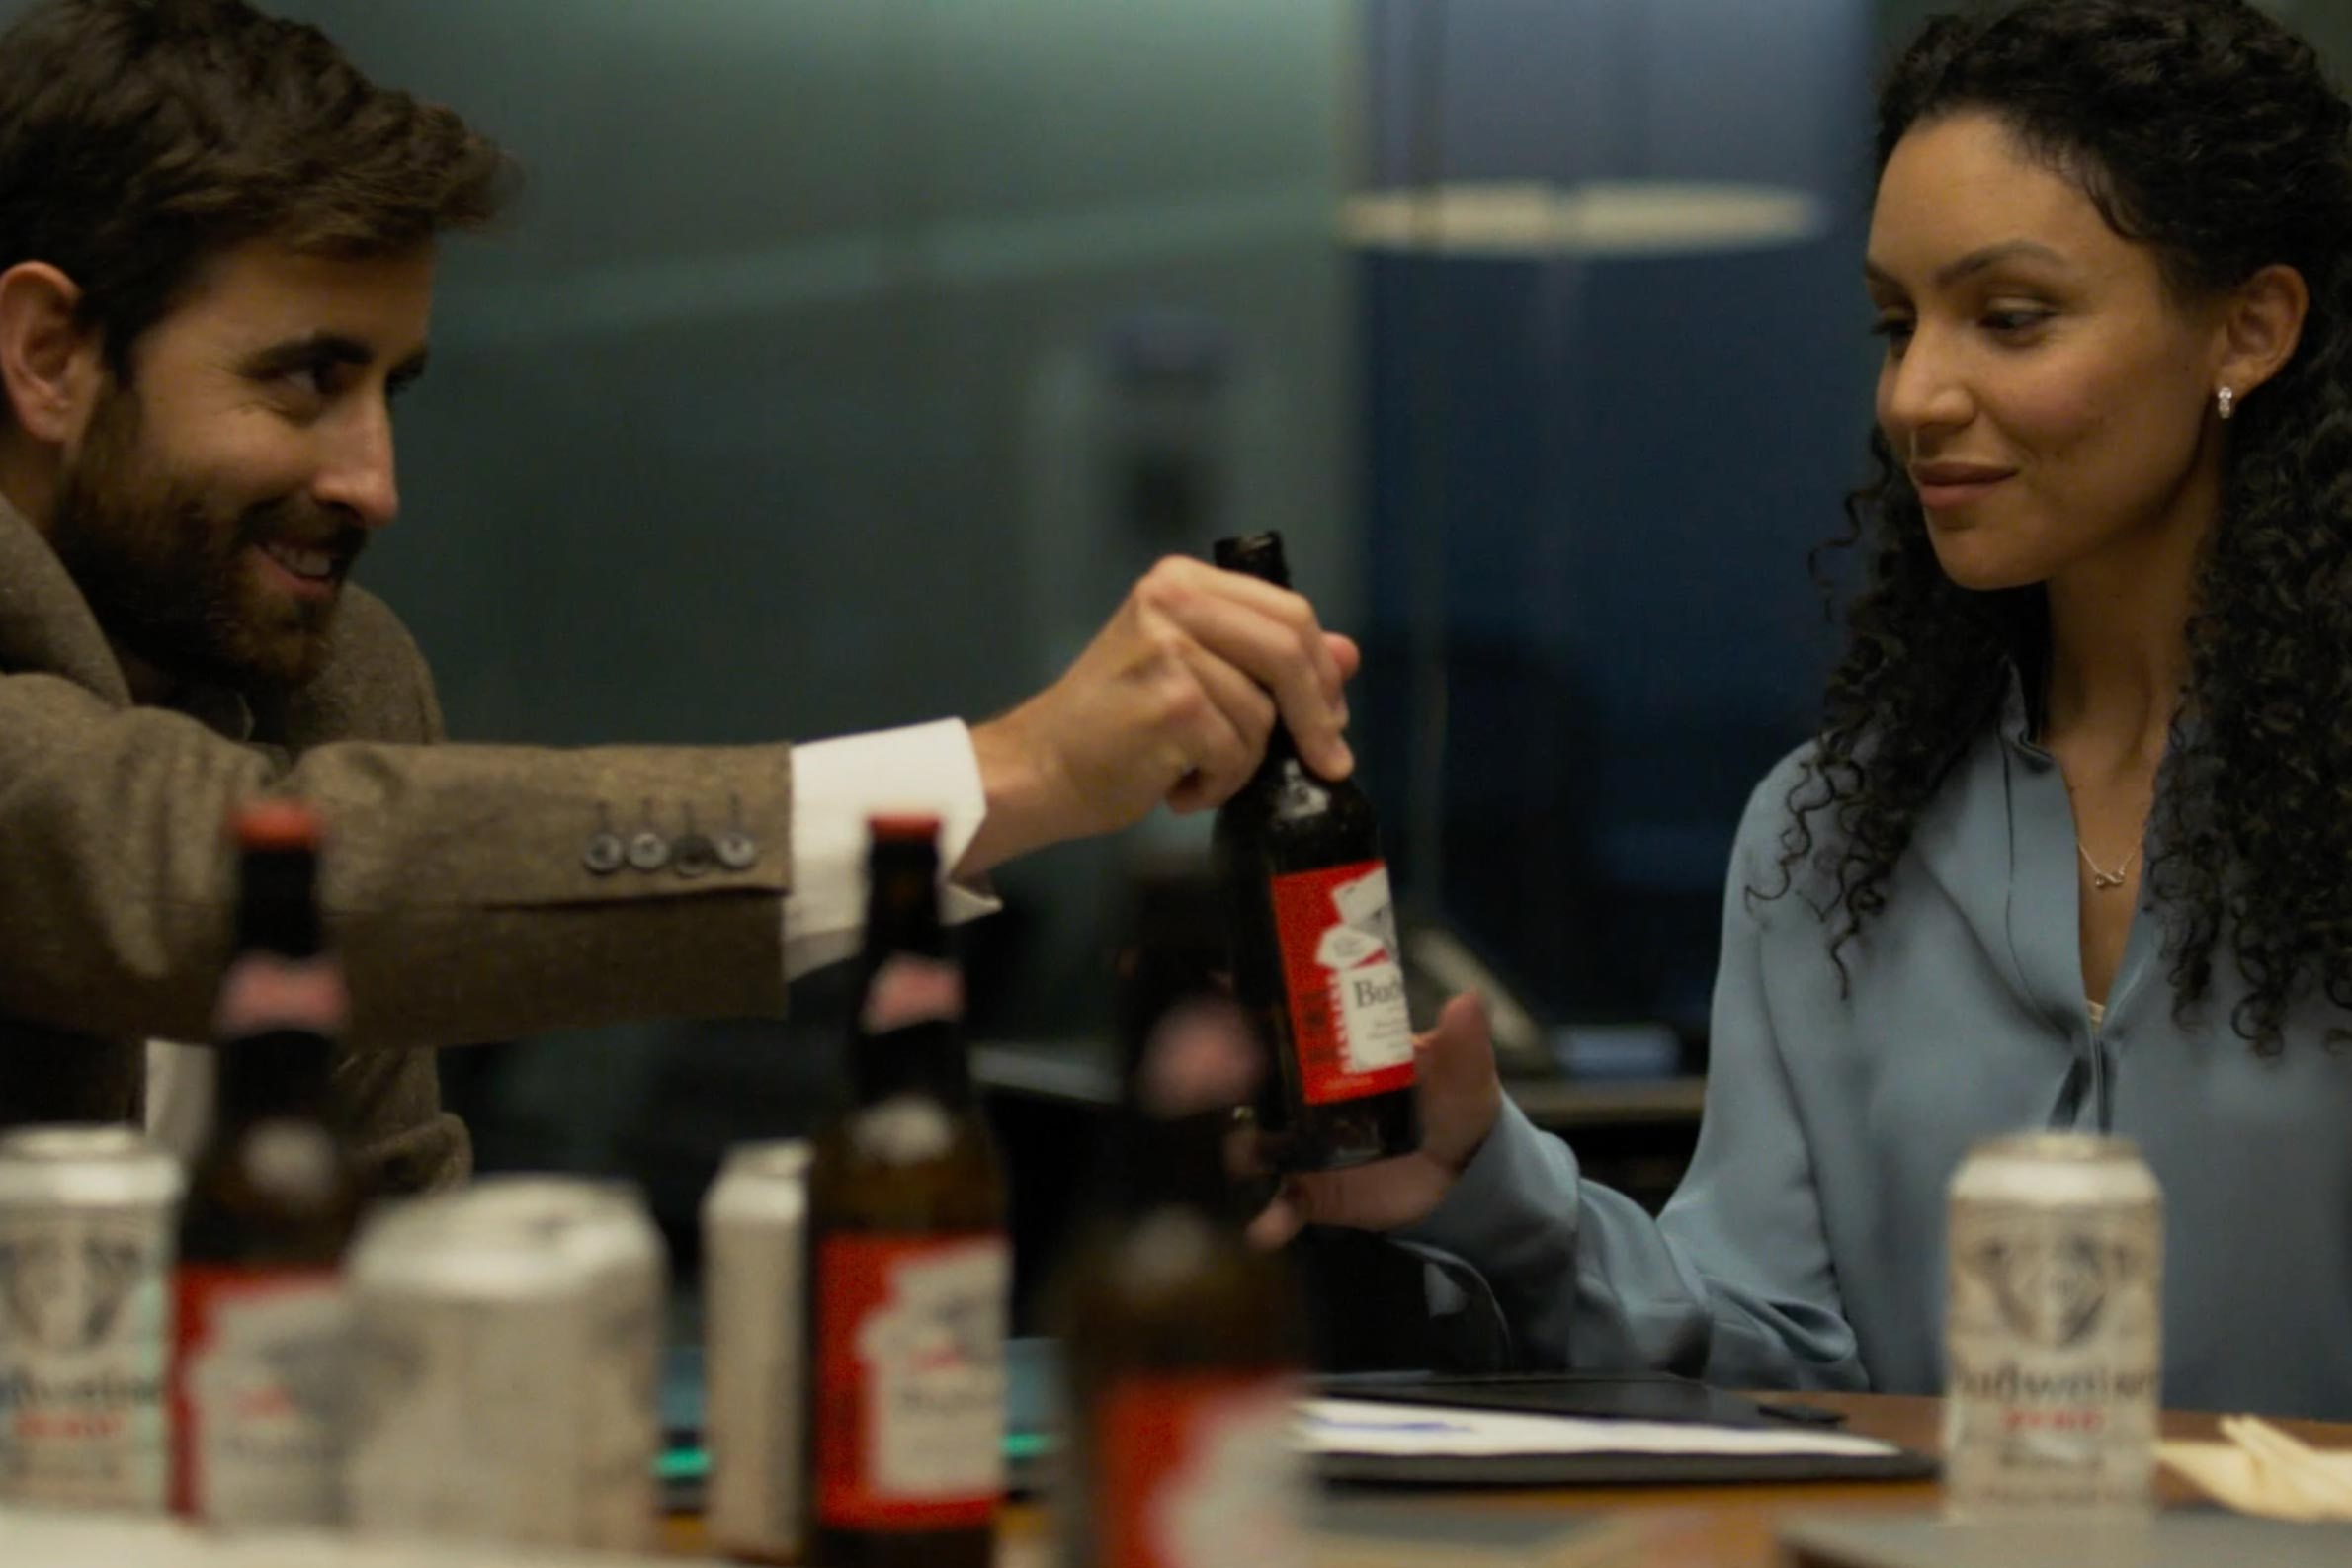 Anheuser-Busch makes the case for beer, not its individual brands, in Super Bowl ad